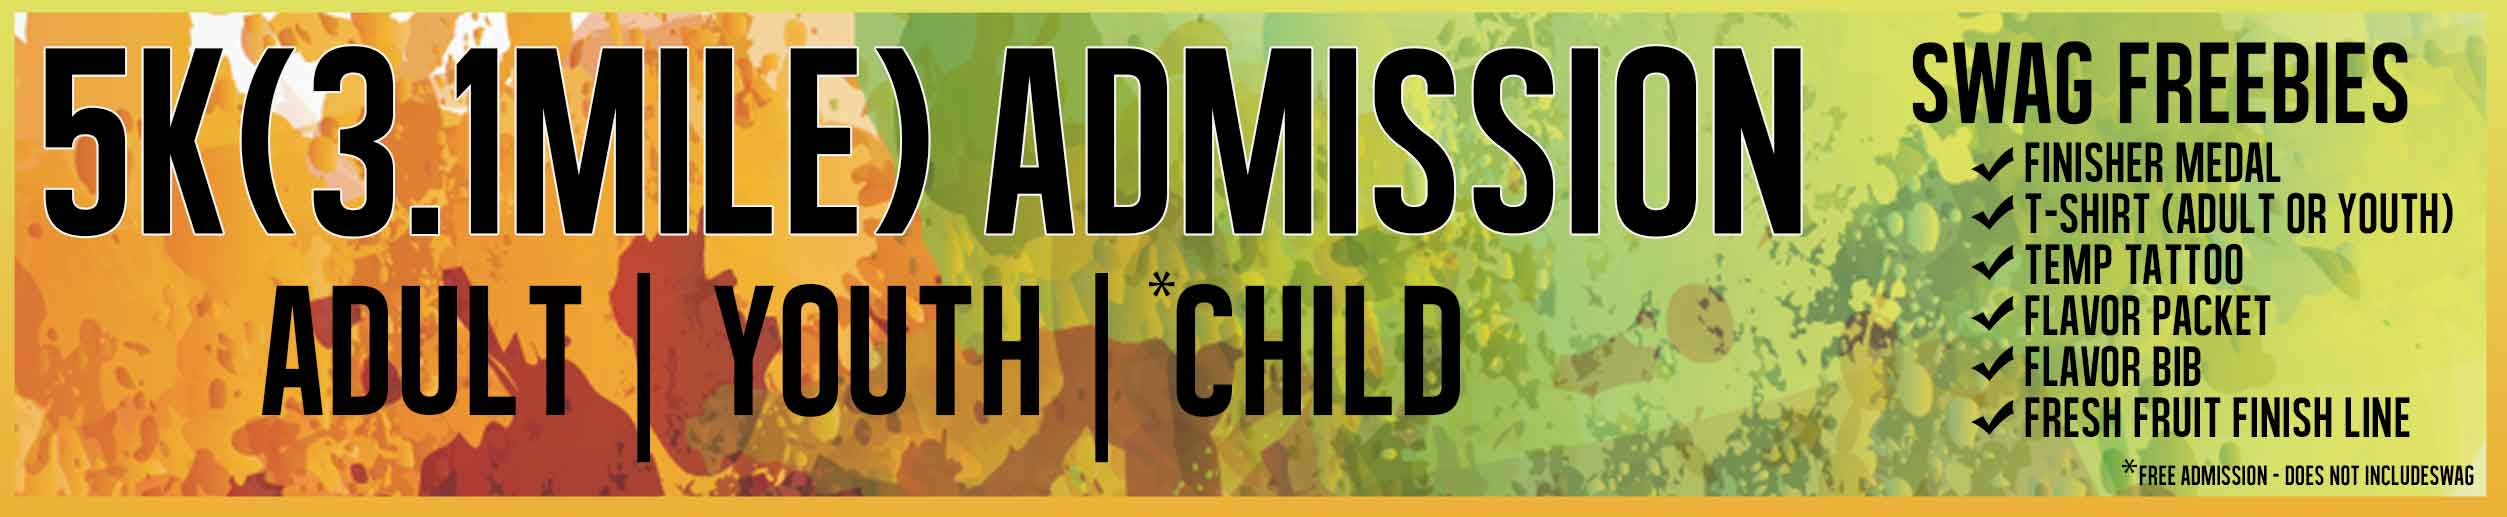 5k Admission Running Adult Child Youth Family Event Chattanooga